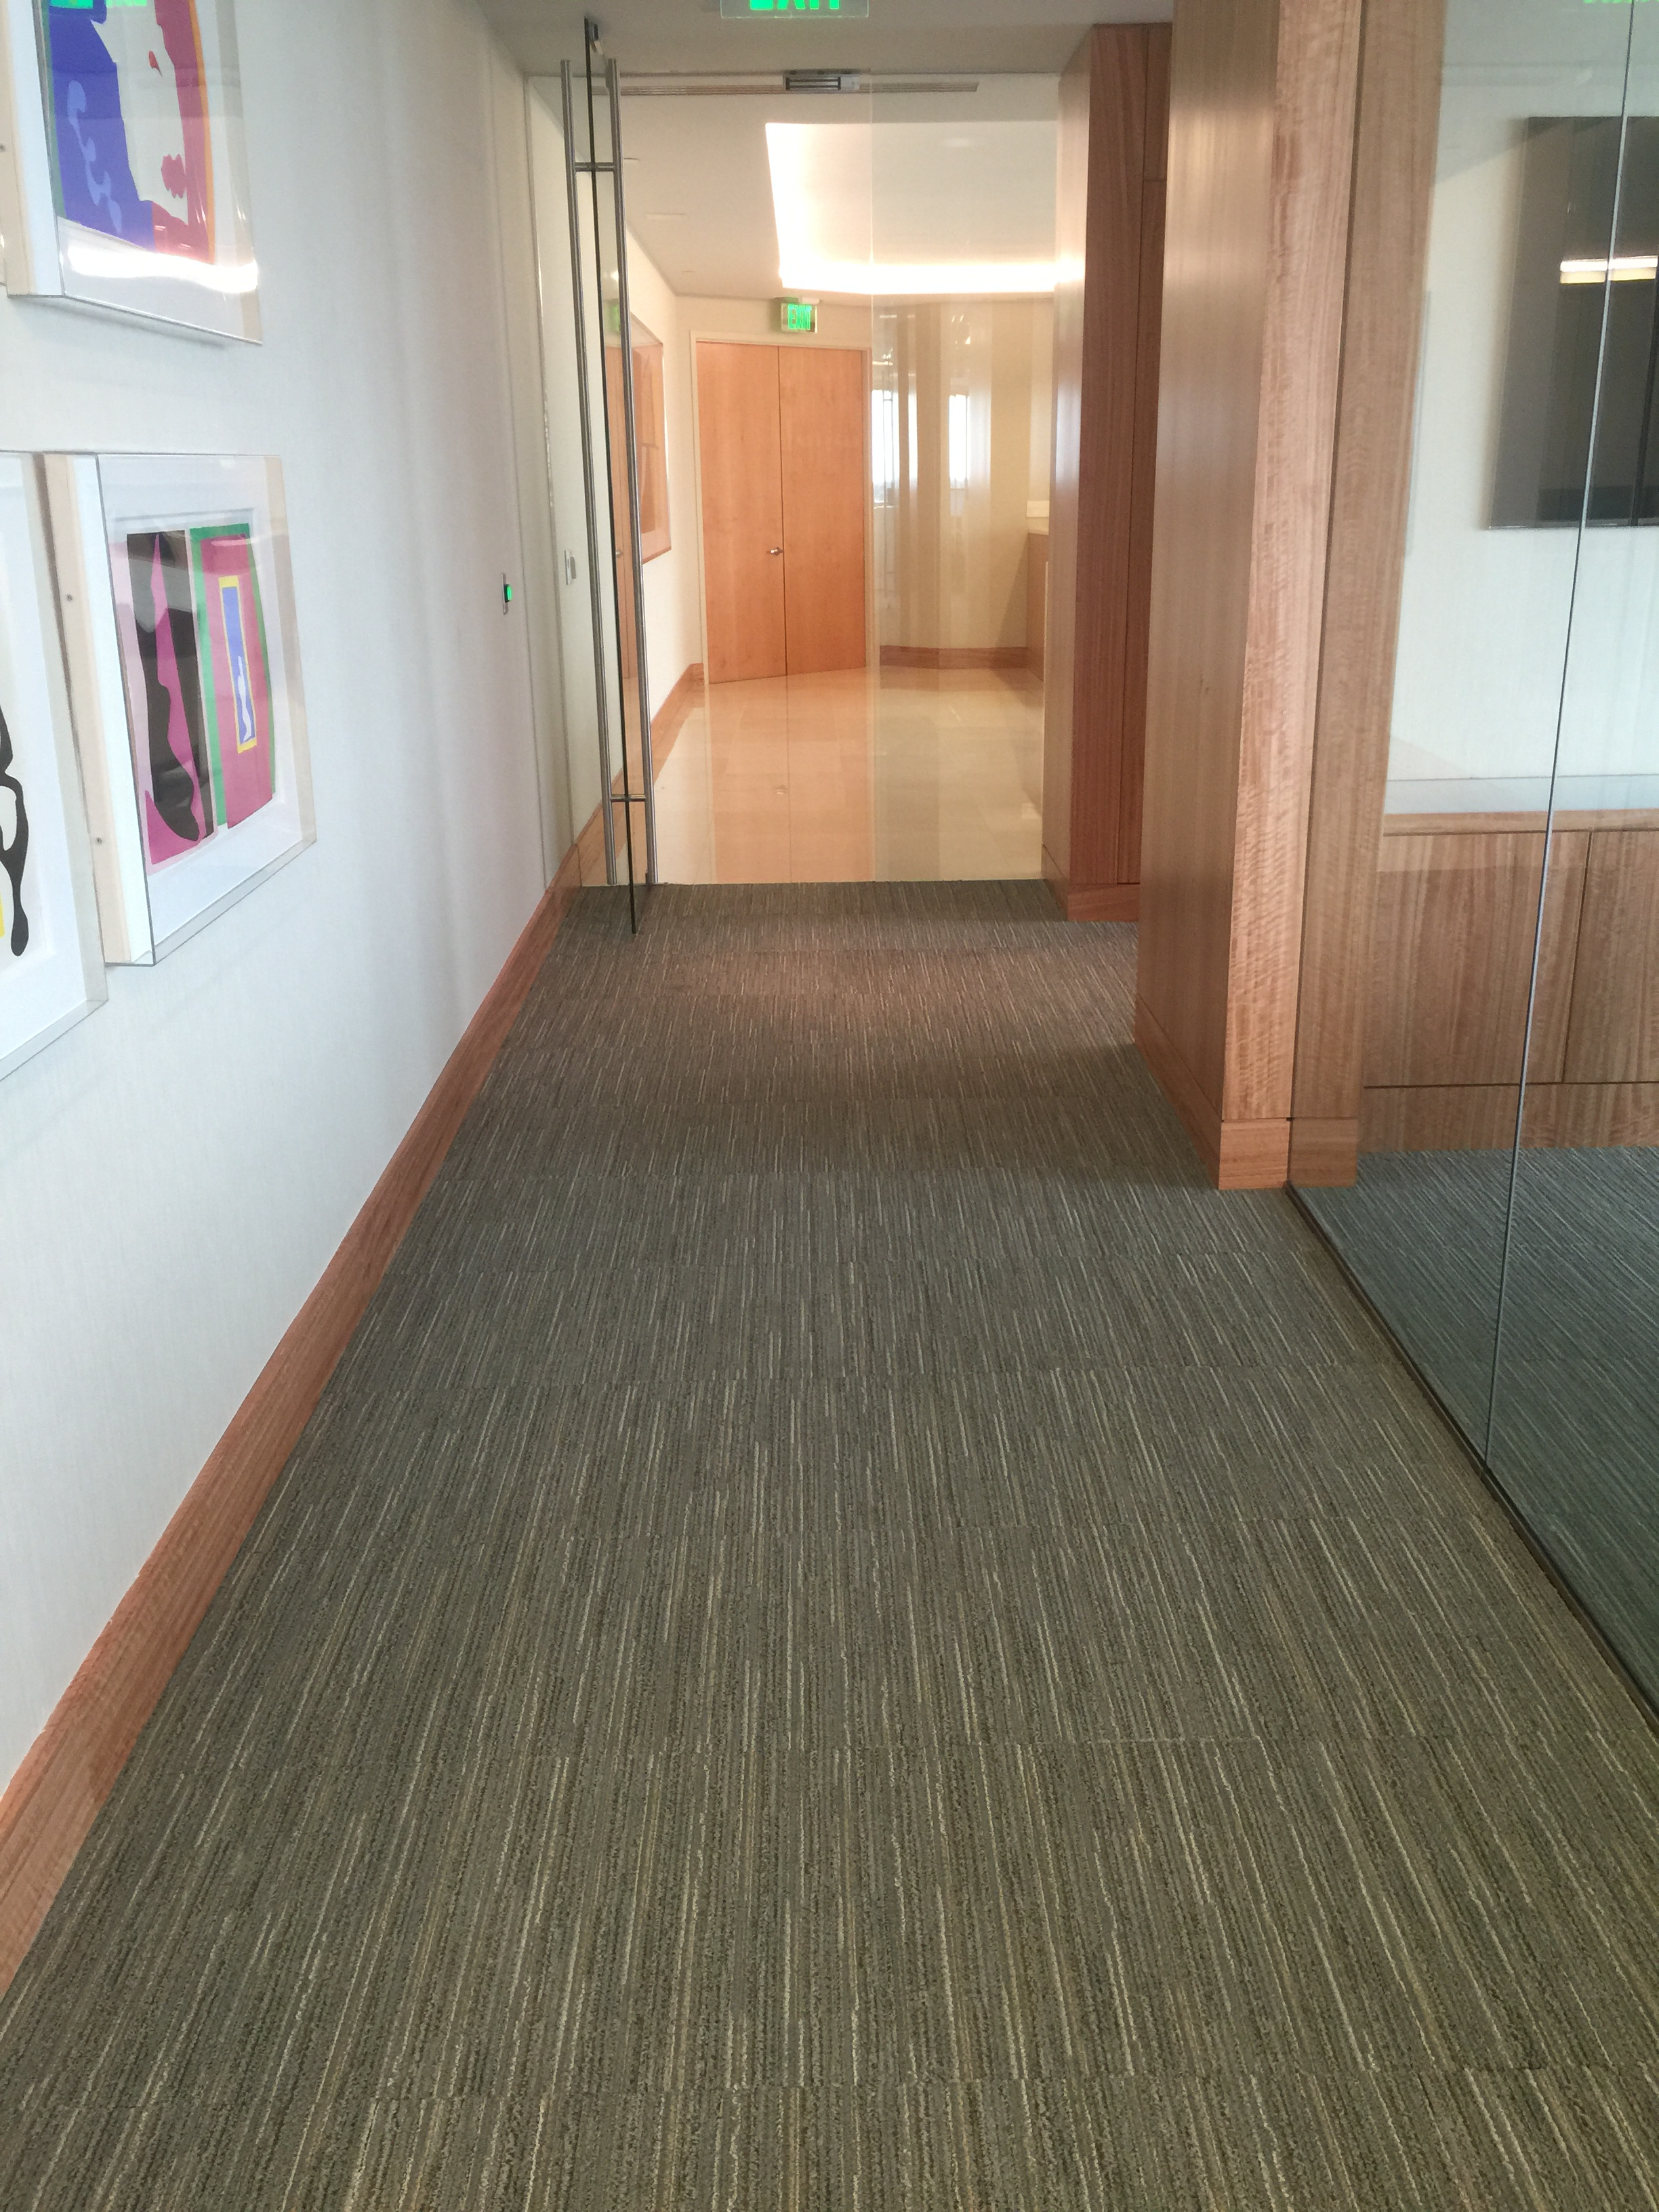 Carpet Installed at South Florida Corporate Office | East Coast Flooring